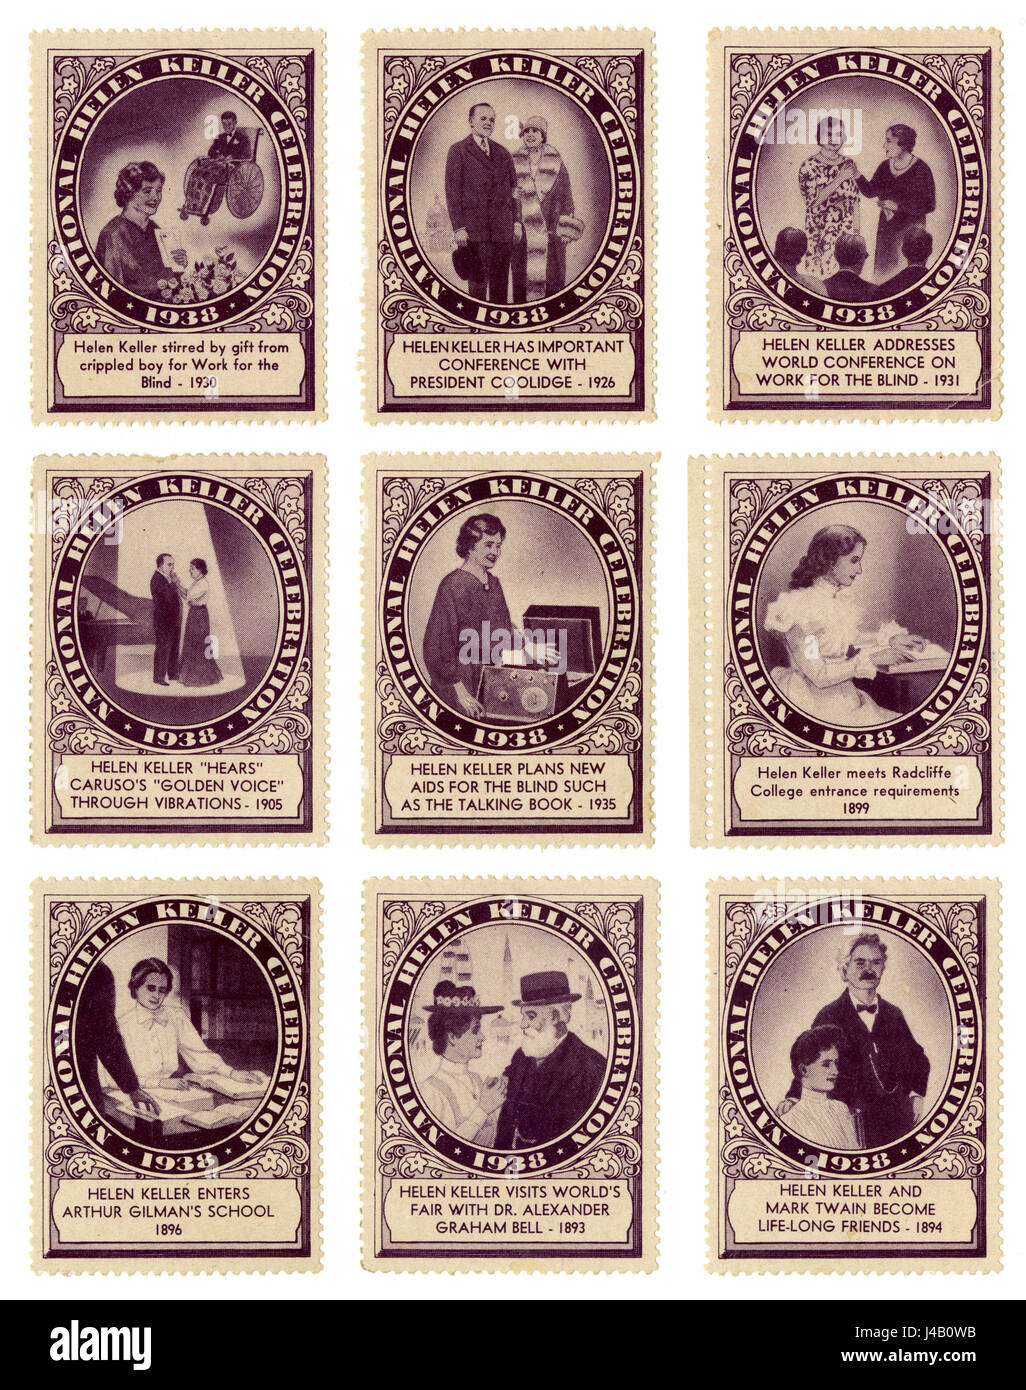 Partial set of antique 'Cinderella' stamps from the 1938 National Helen Keller Celebration. - Stock Image